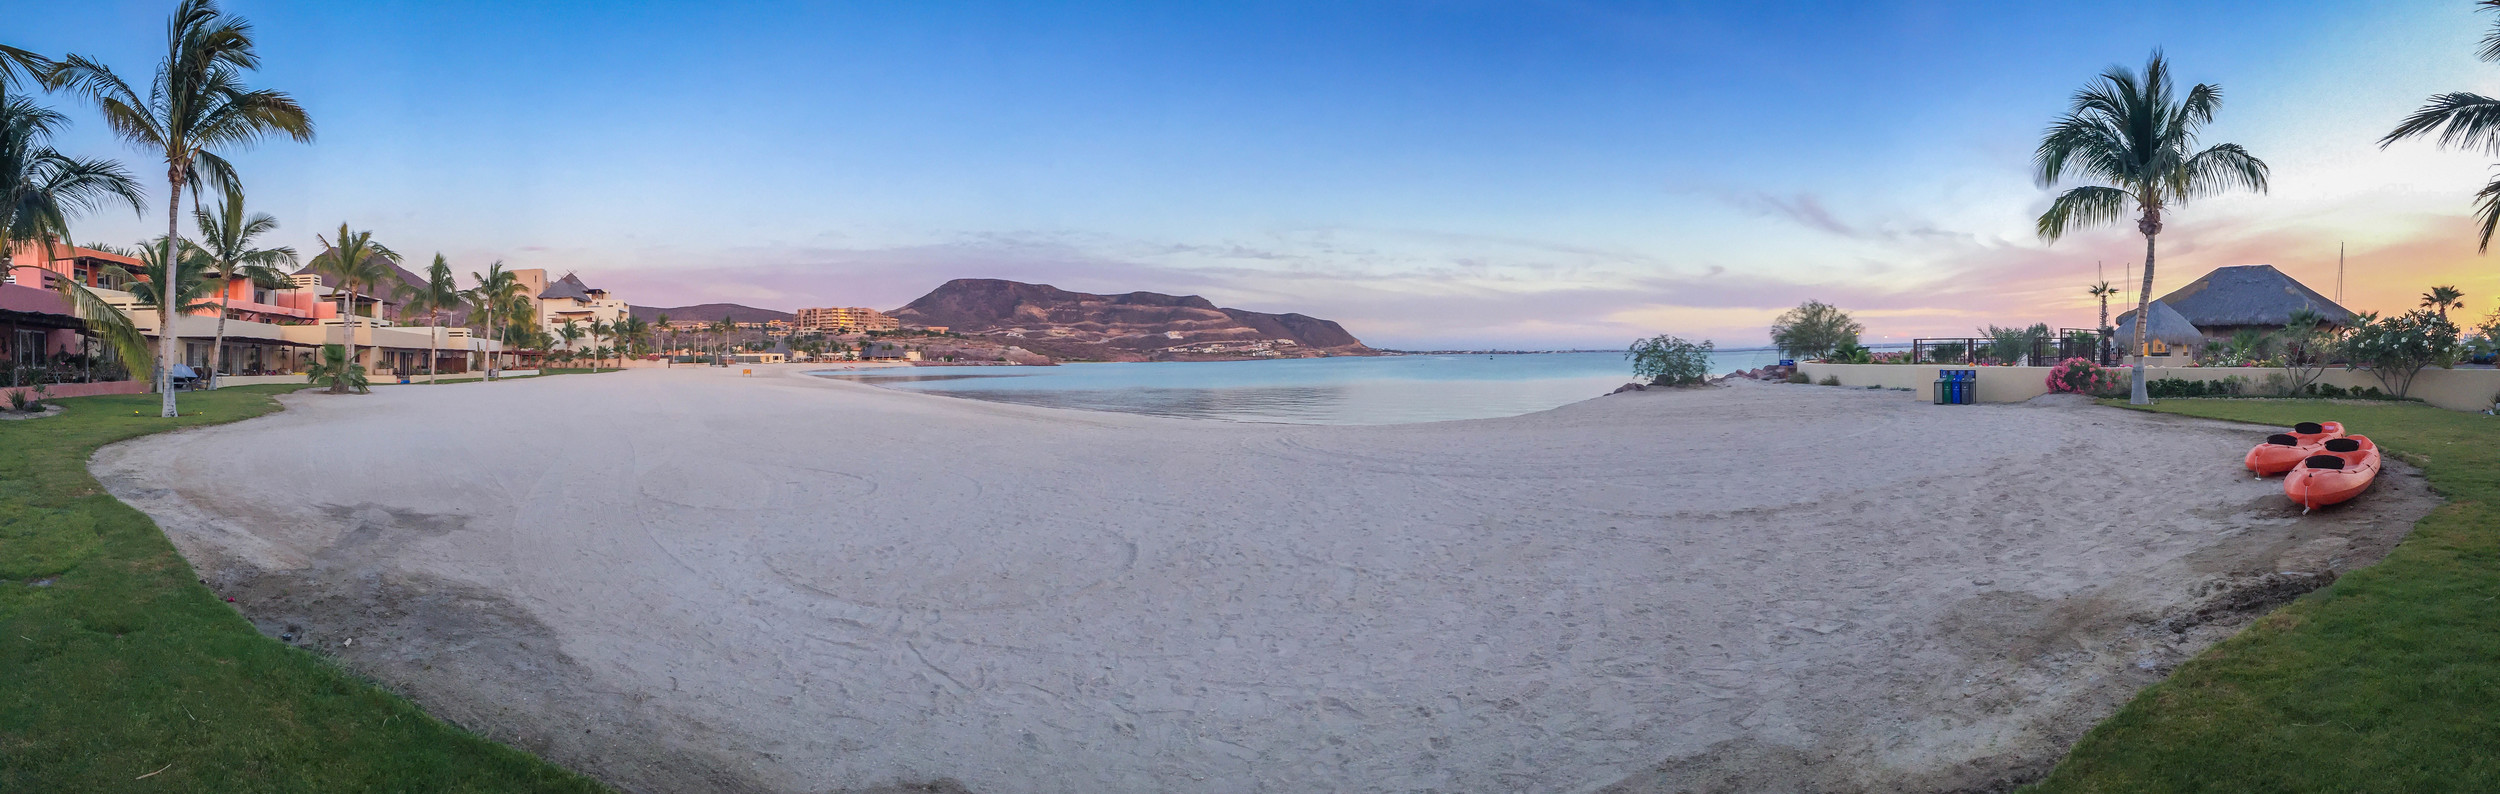 We stayed at Costa Baja Resort and had the most incredible sunsets each night! This is our private beach with plenty of paddle boards, kayaks and other water toys!